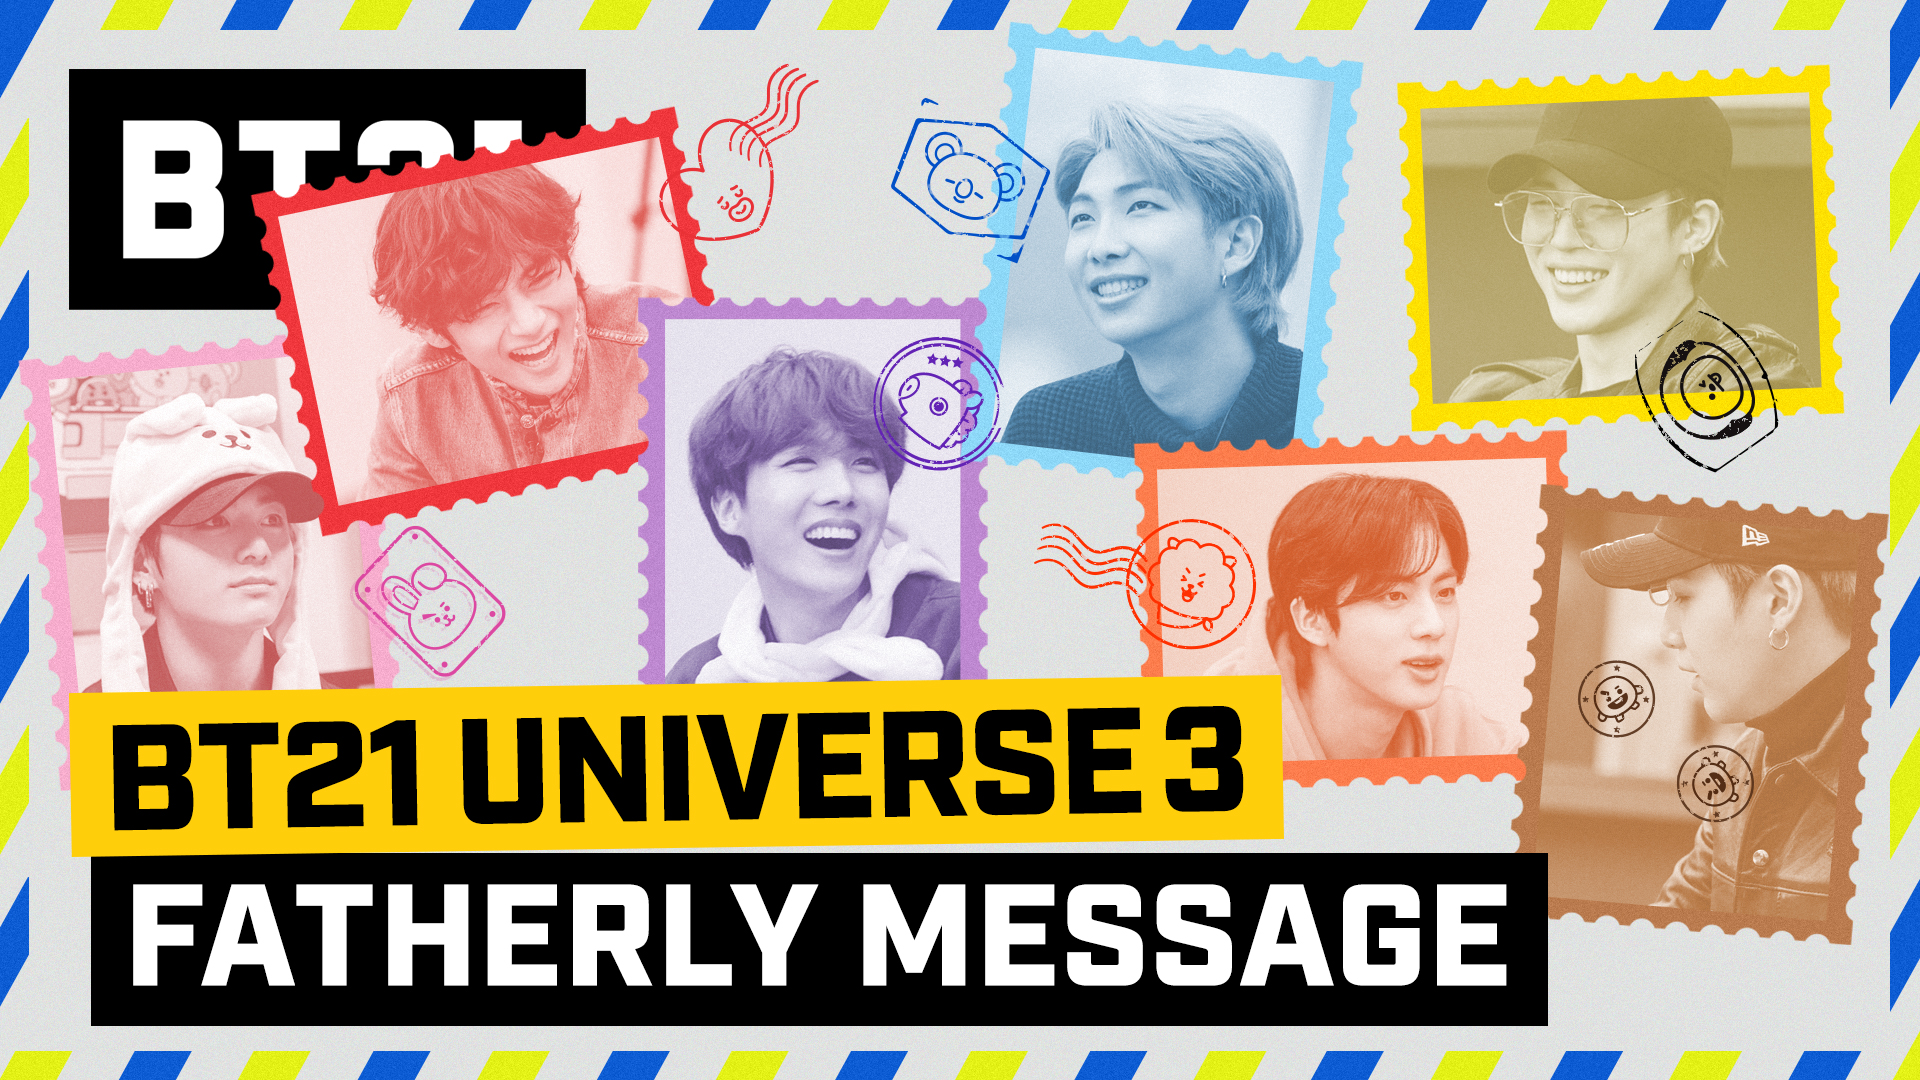 BT21 UNIVERSE 3 EP.09 - Fatherly Message